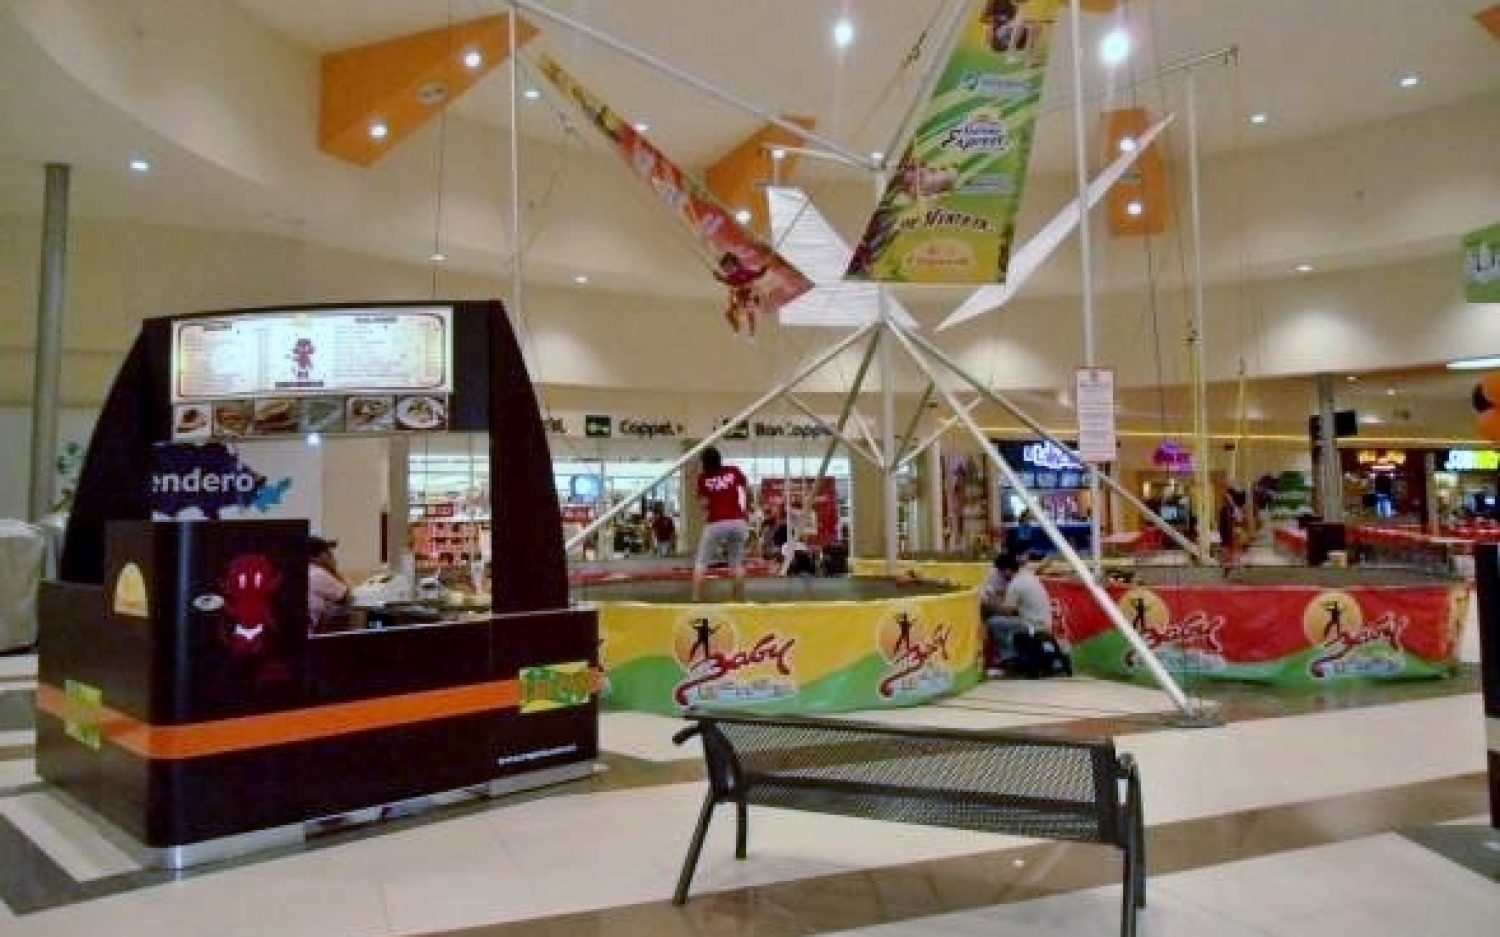 Co-Plaza Sendero Villahermosa (50)